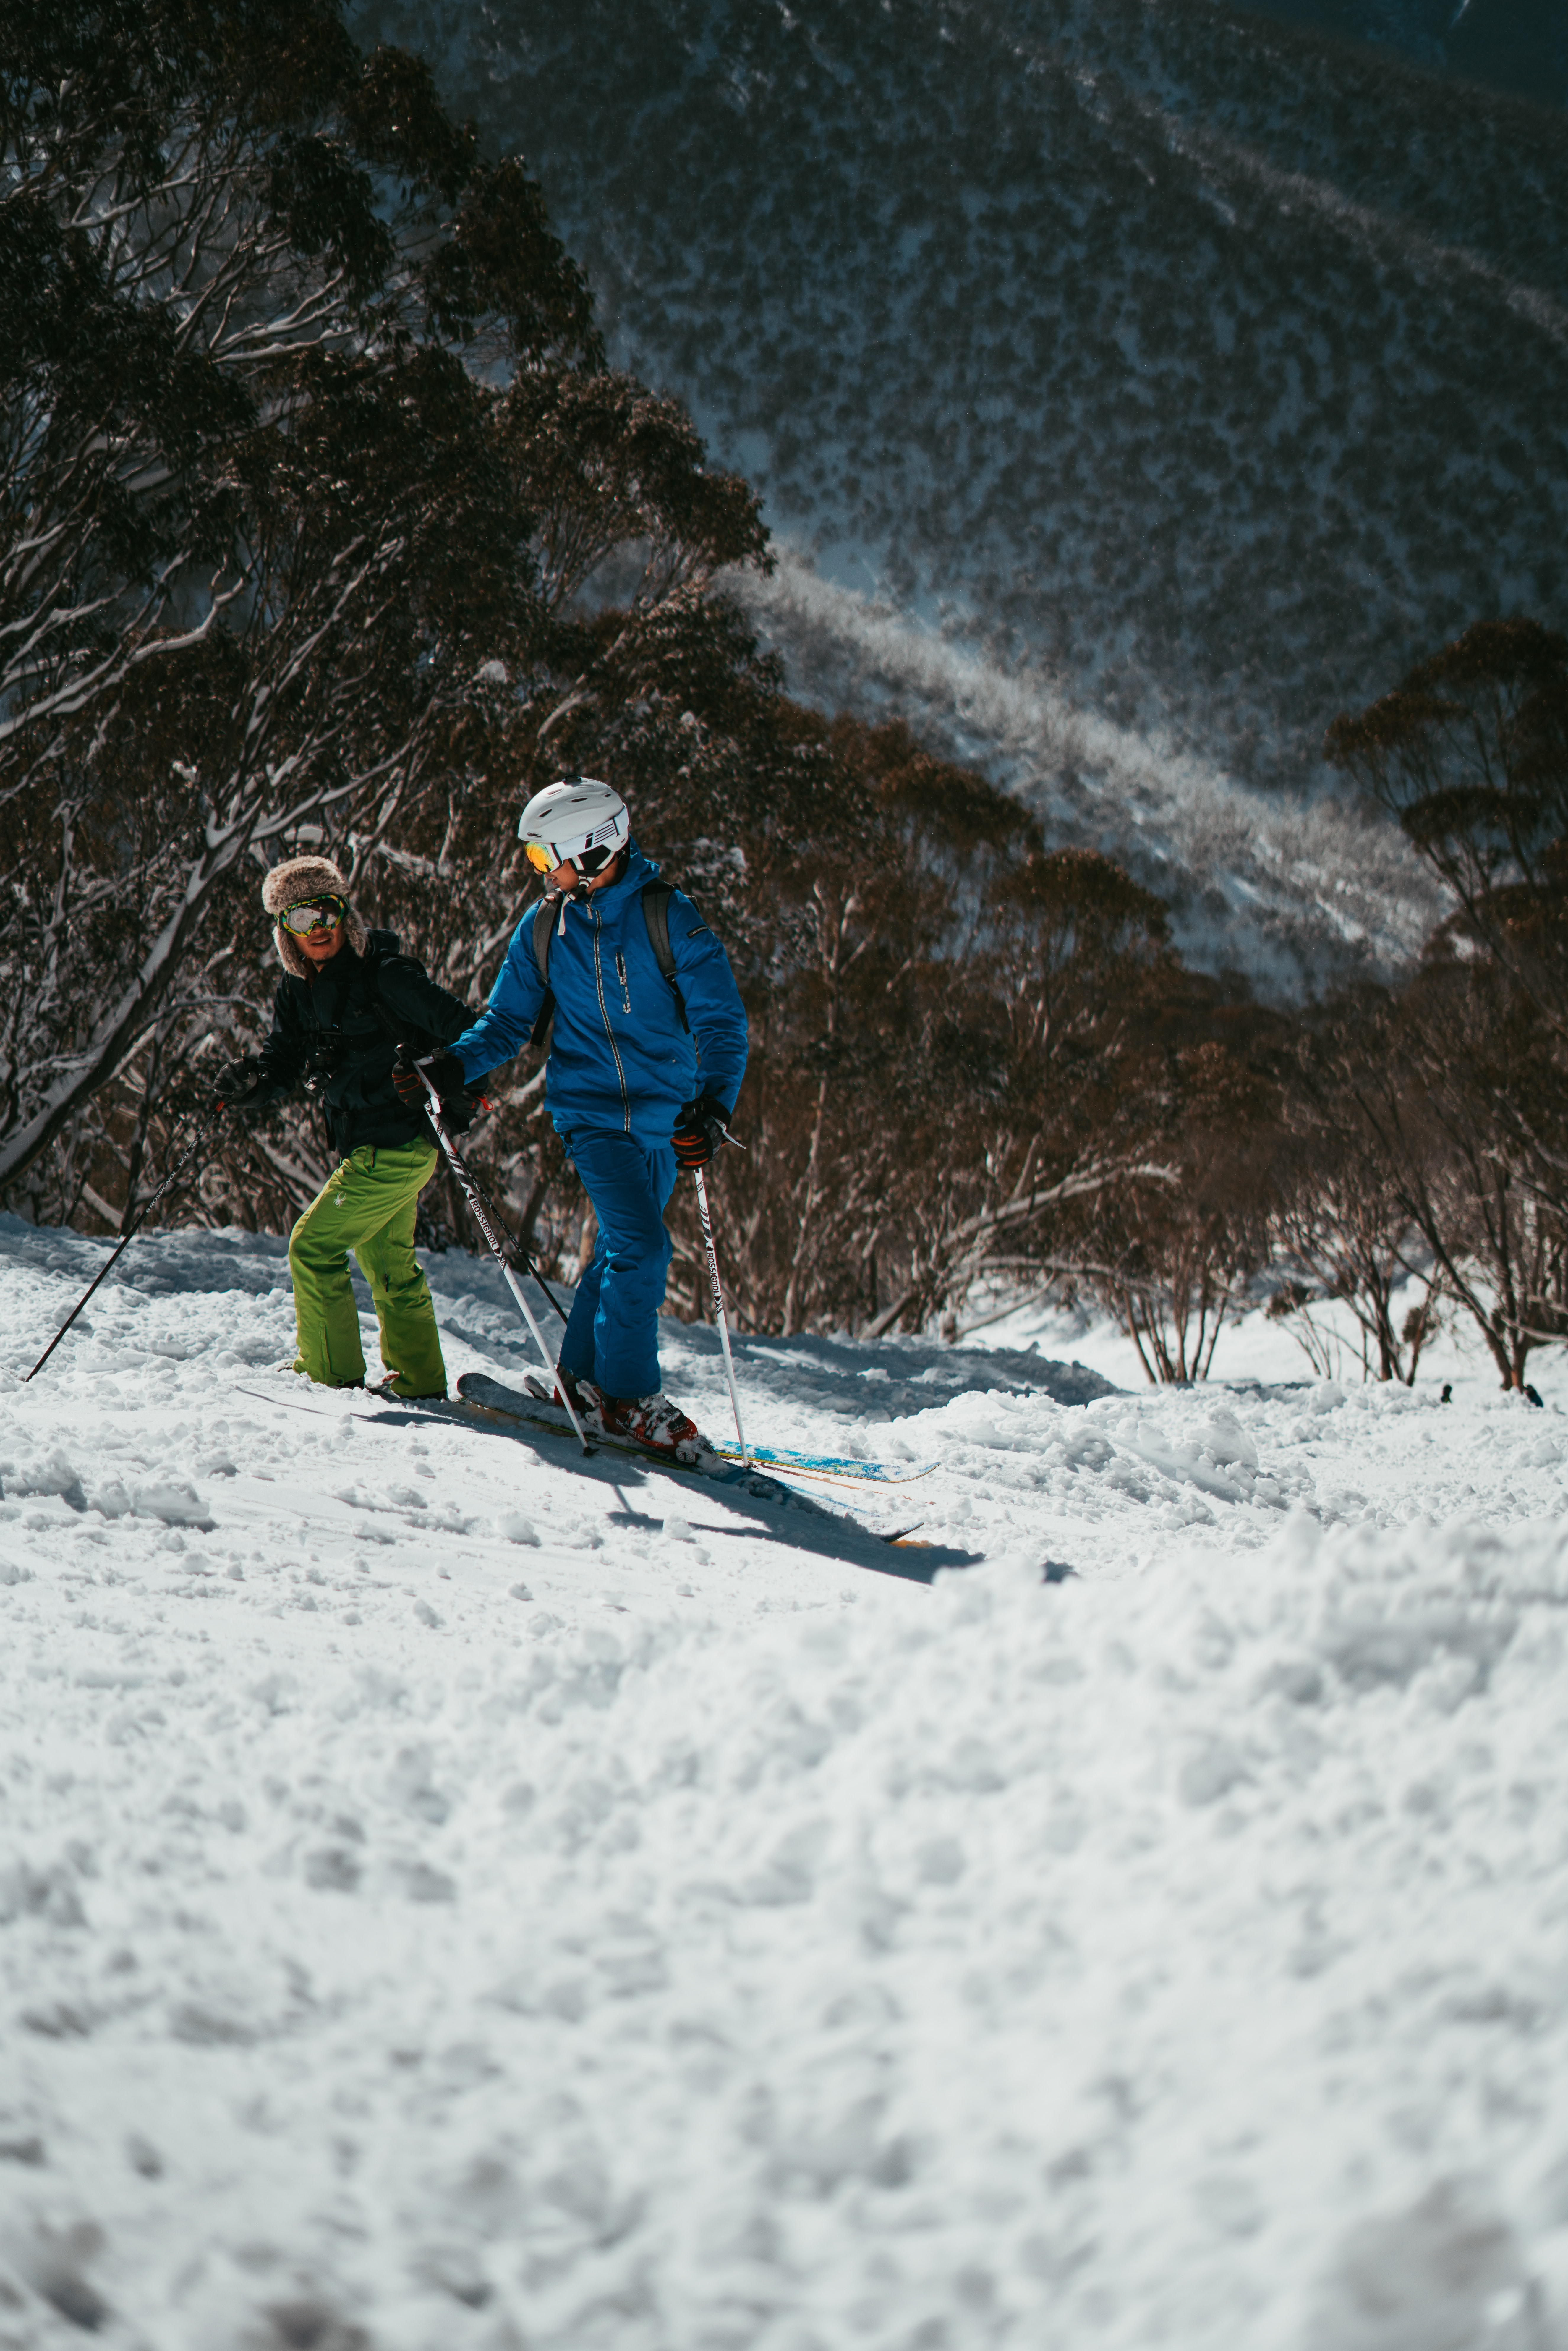 two people skiing on snow mountain